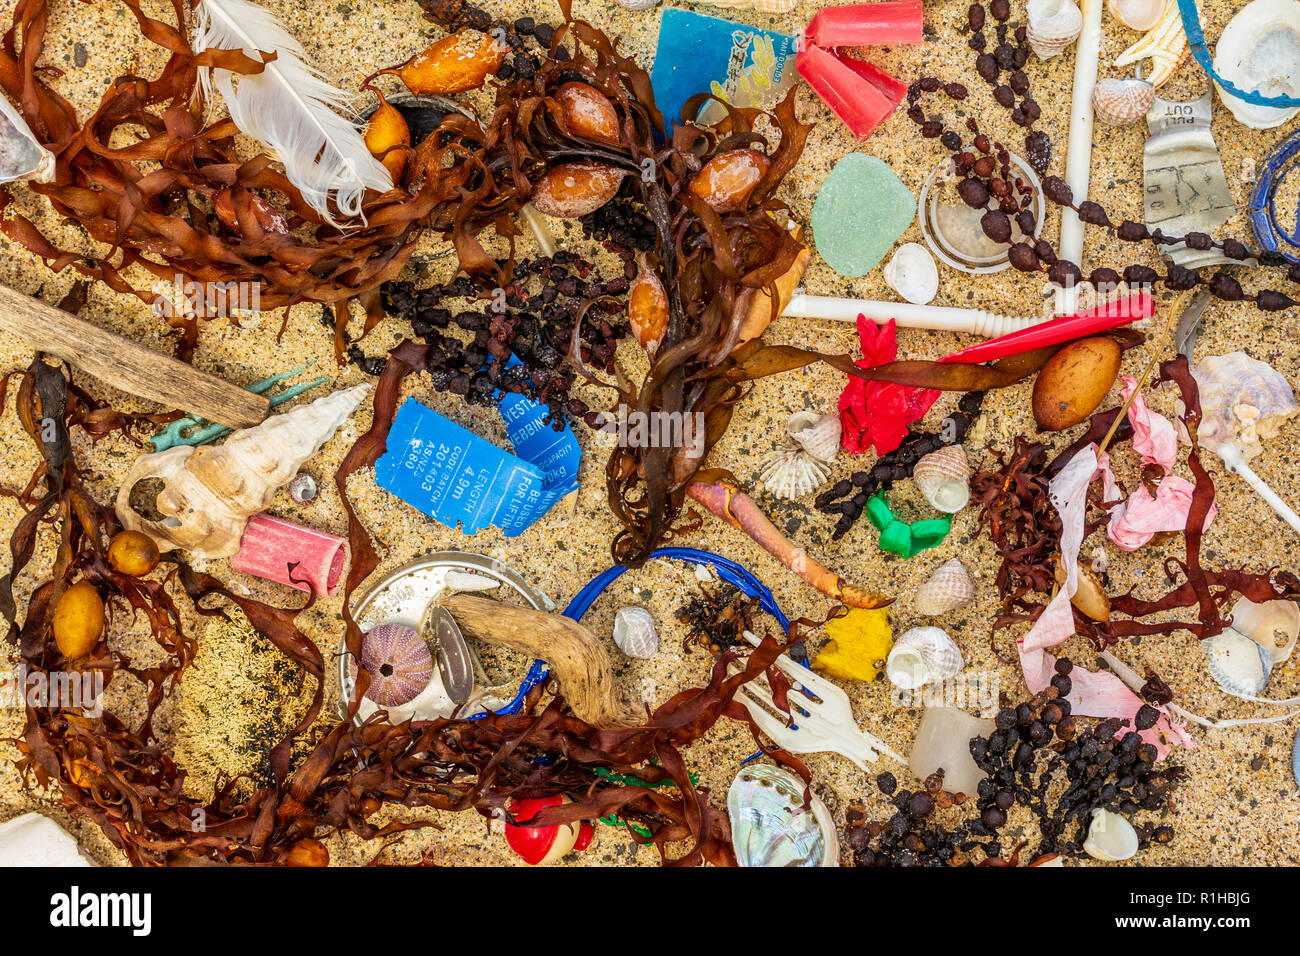 Real plastic pollution, including single use plastic, washed up on beach mixed with seaweed shells and feathers - Stock Image